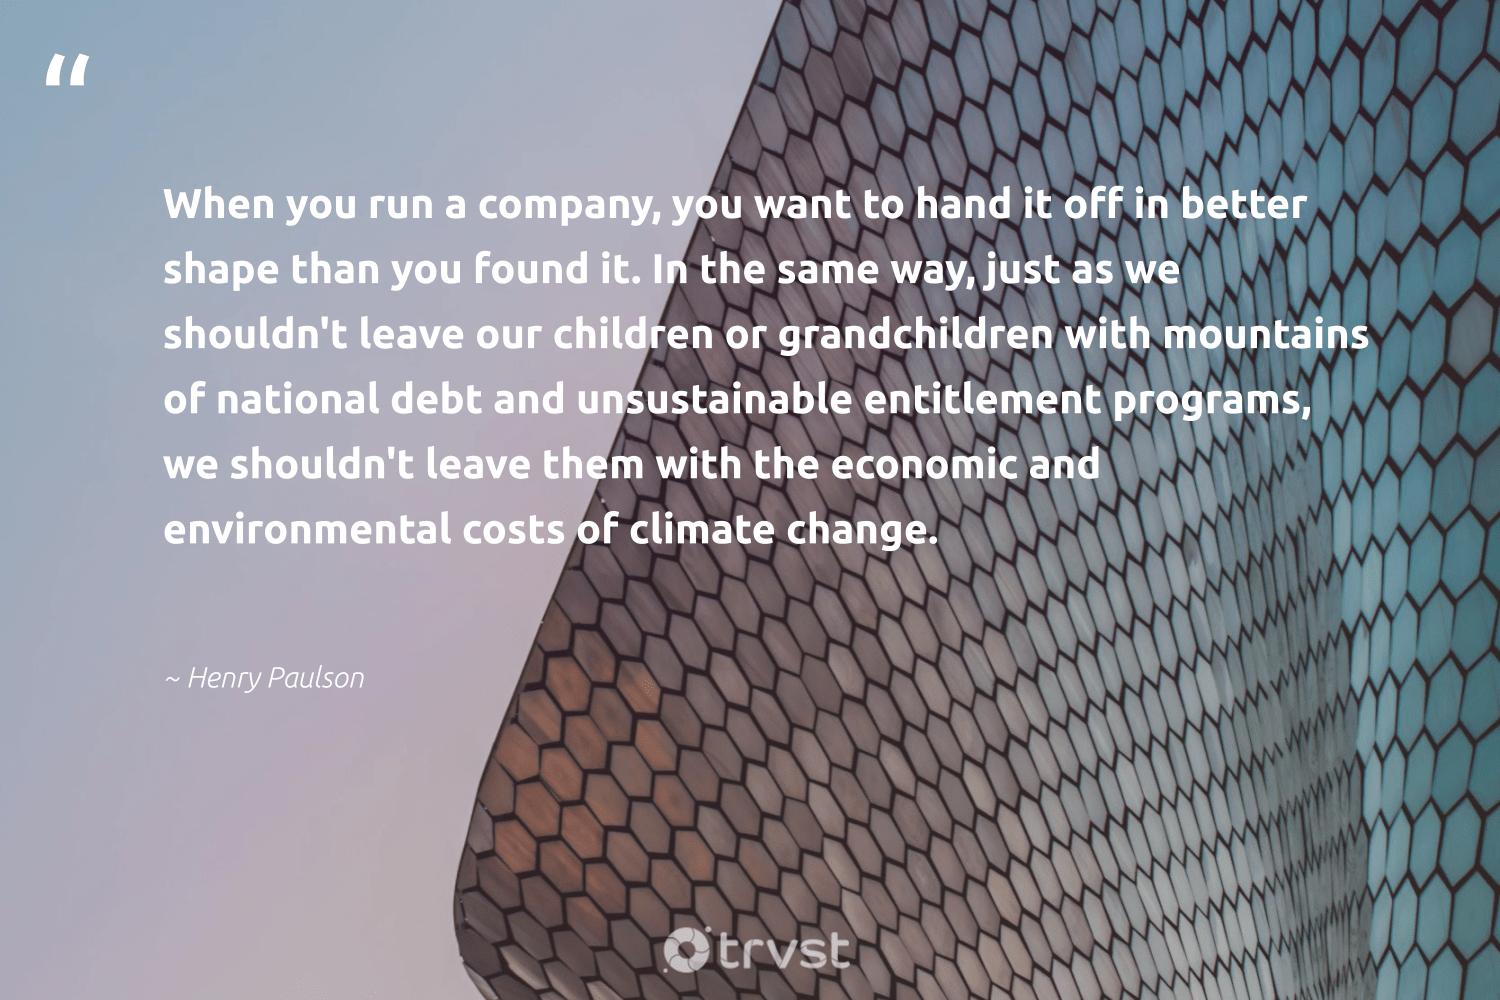 """""""When you run a company, you want to hand it off in better shape than you found it. In the same way, just as we shouldn't leave our children or grandchildren with mountains of national debt and unsustainable entitlement programs, we shouldn't leave them with the economic and environmental costs of climate change.""""  - Henry Paulson #trvst #quotes #climatechange #environmental #mountains #climate #children #actonclimate #co2 #dogood #climateaction #bethechange"""